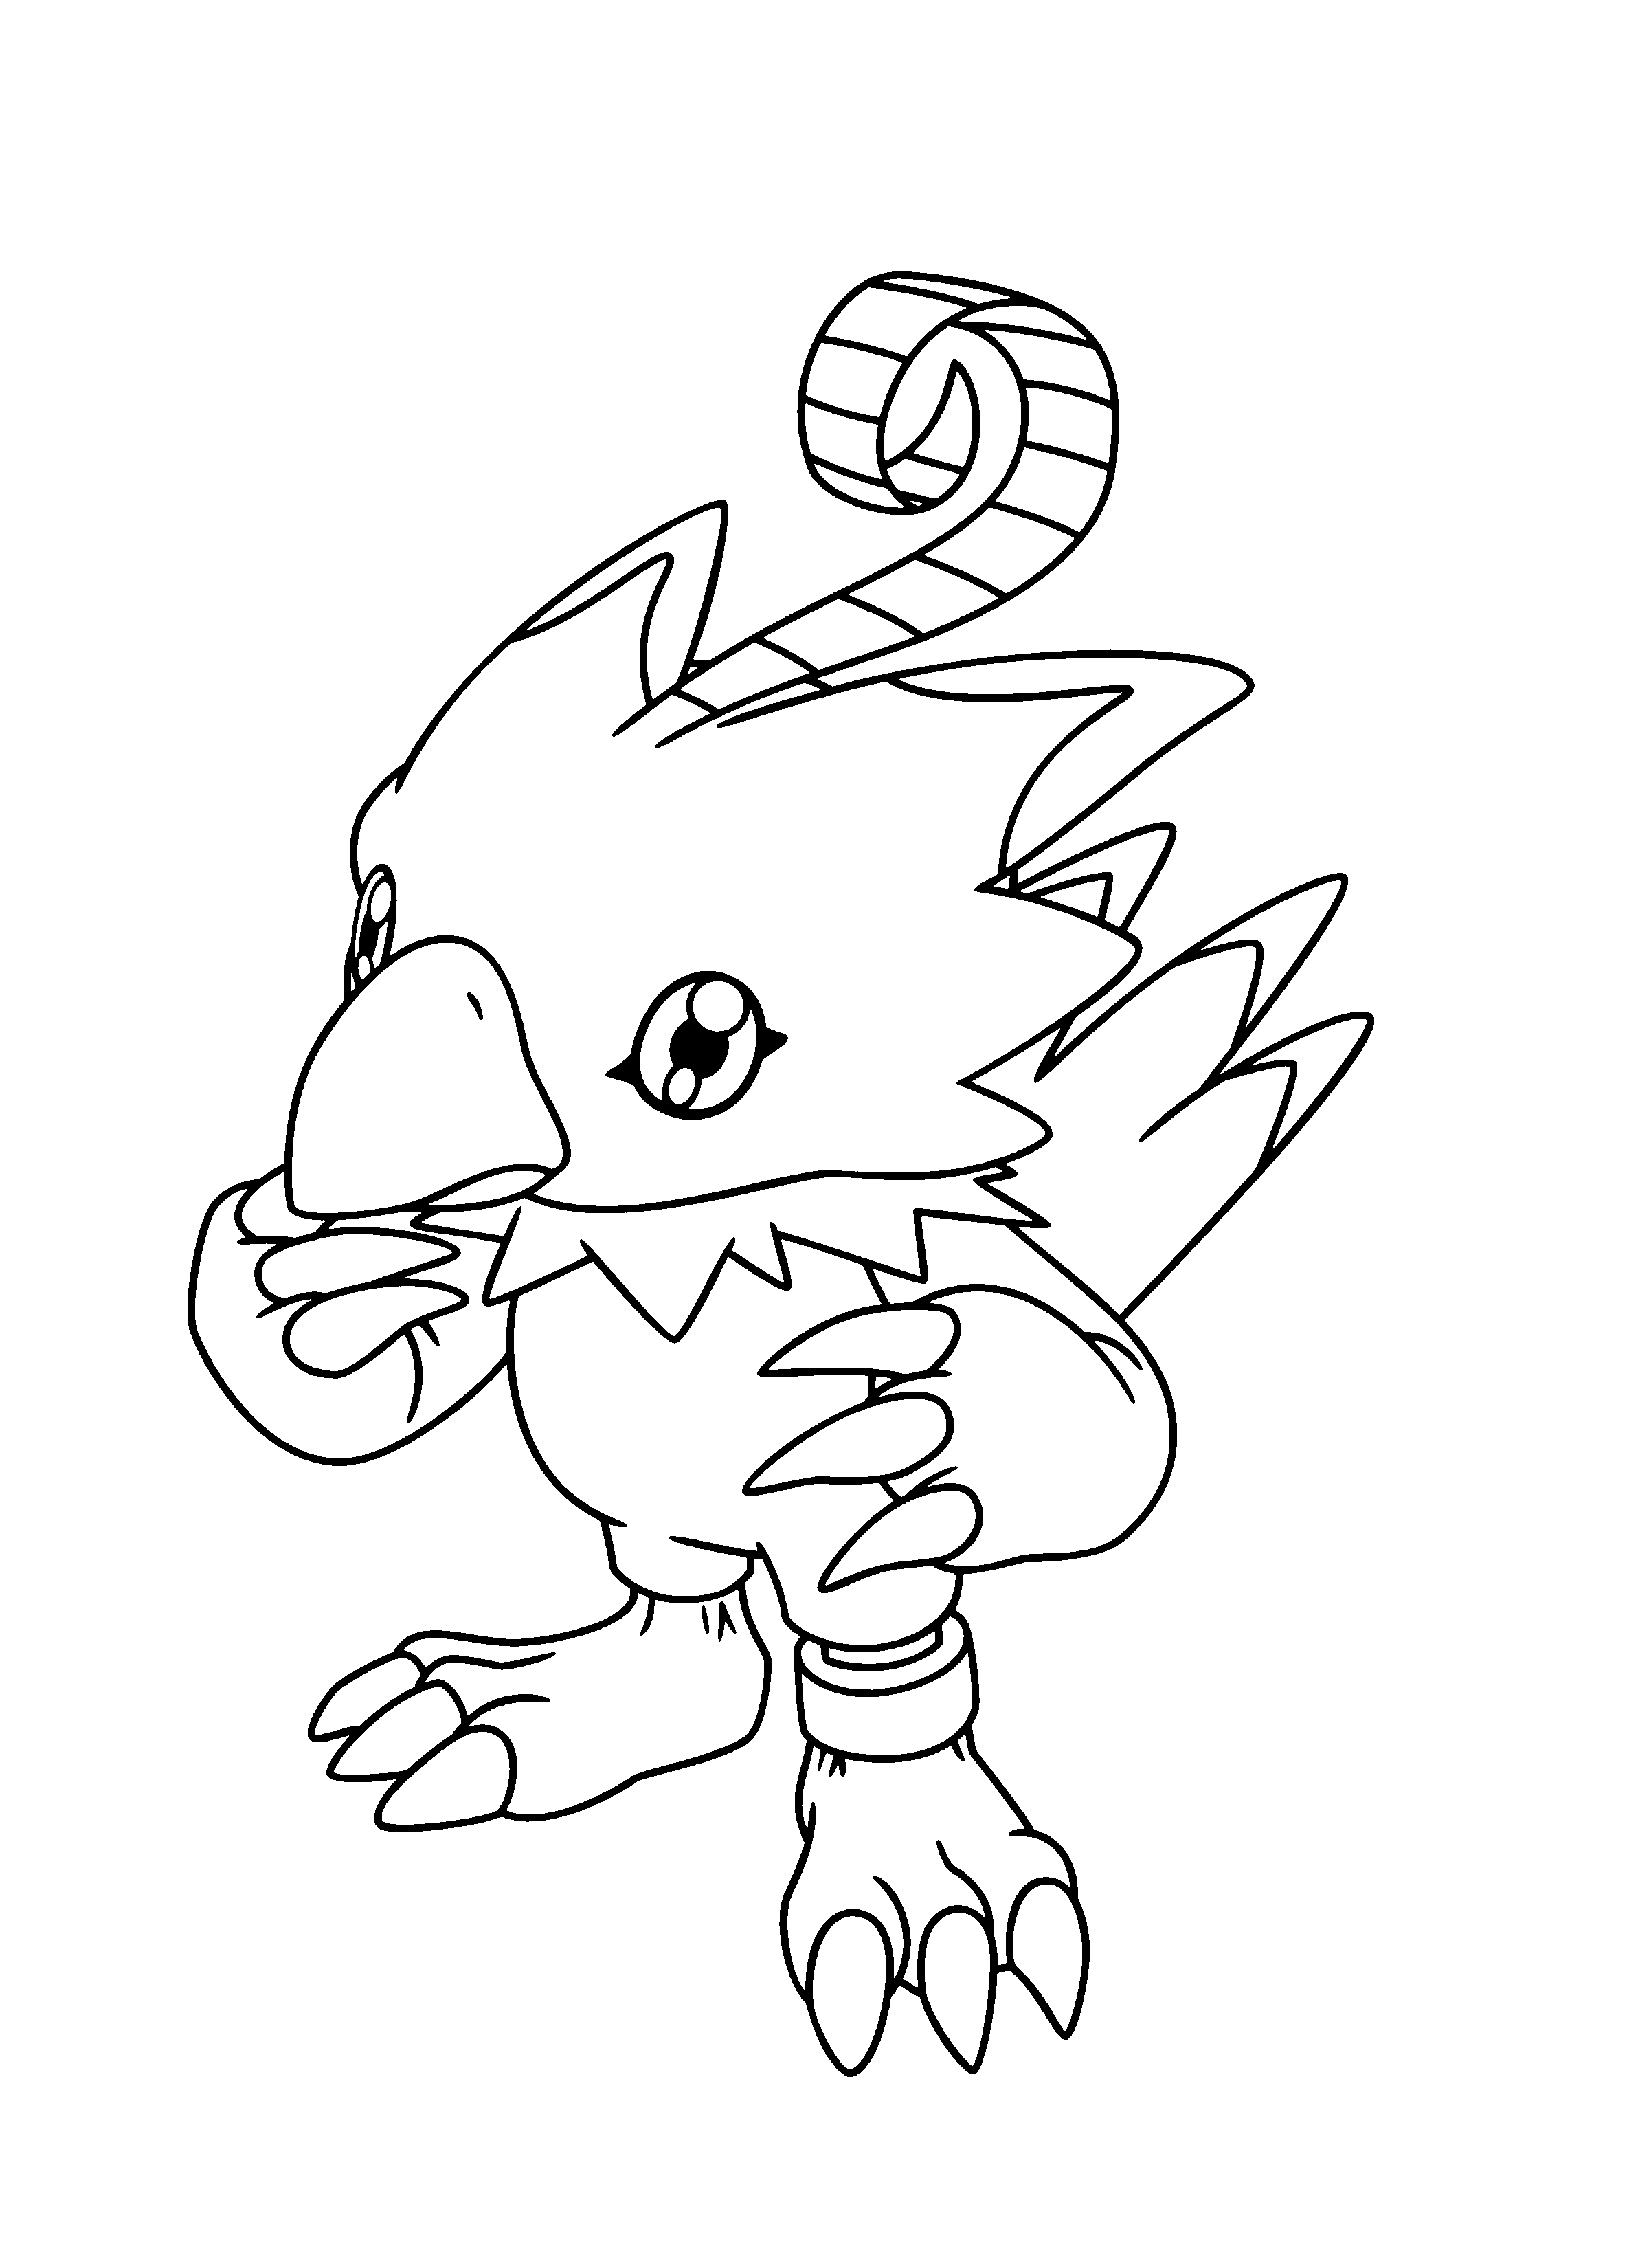 digimon coloring pages digimon coloring pages coloringpages1001com